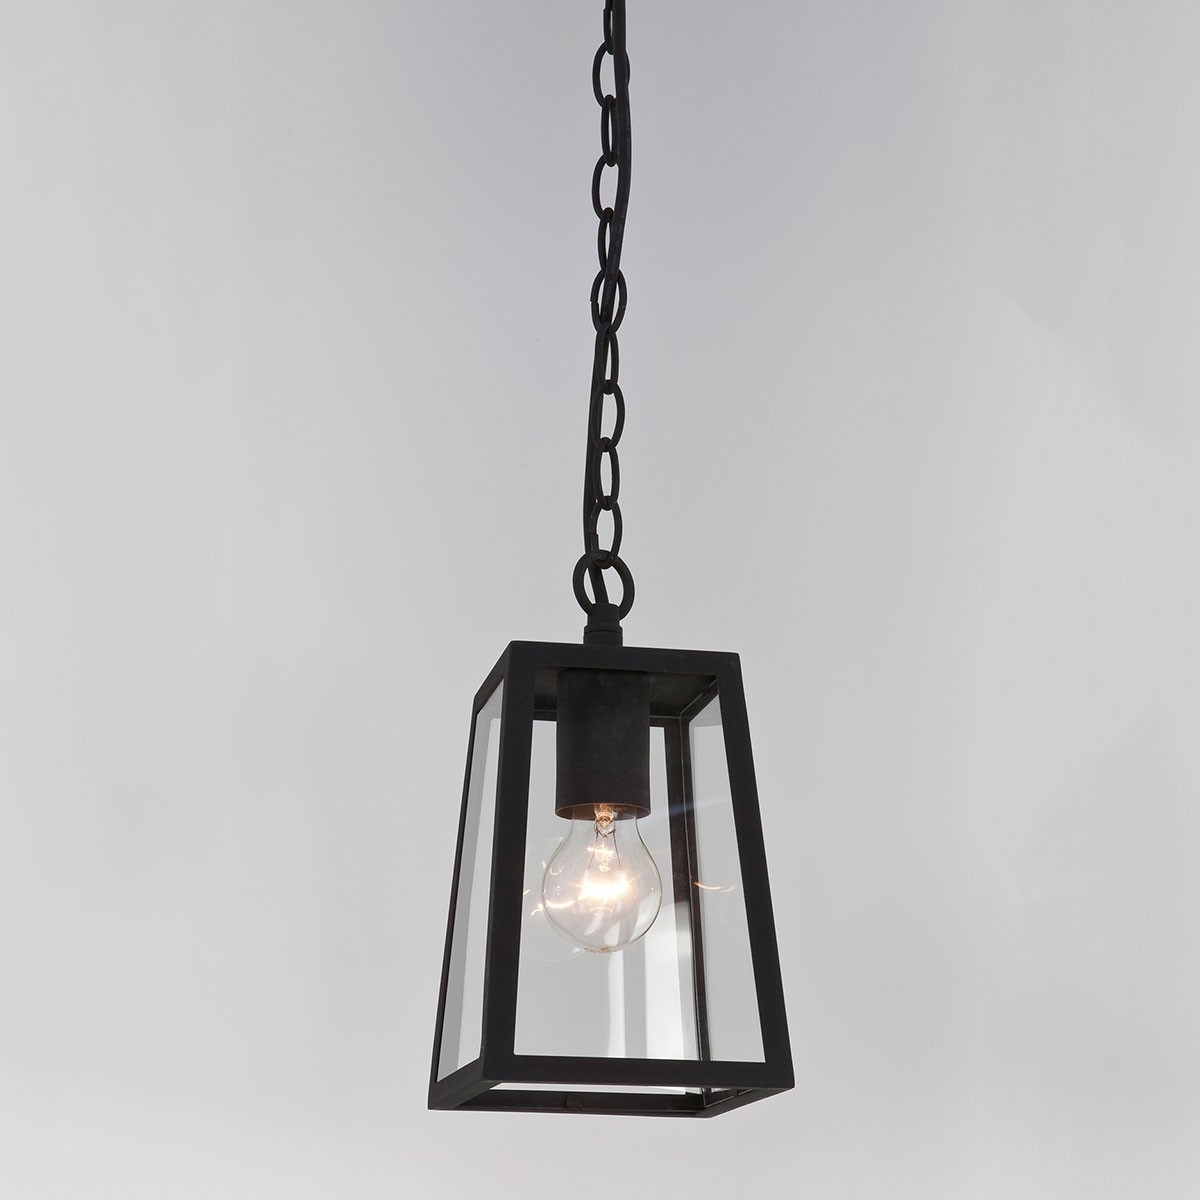 Large Outdoor Pendant Light Best Outdoor String Lights Gazebo Within Outdoor Hanging Lights At Walmart (#9 of 15)